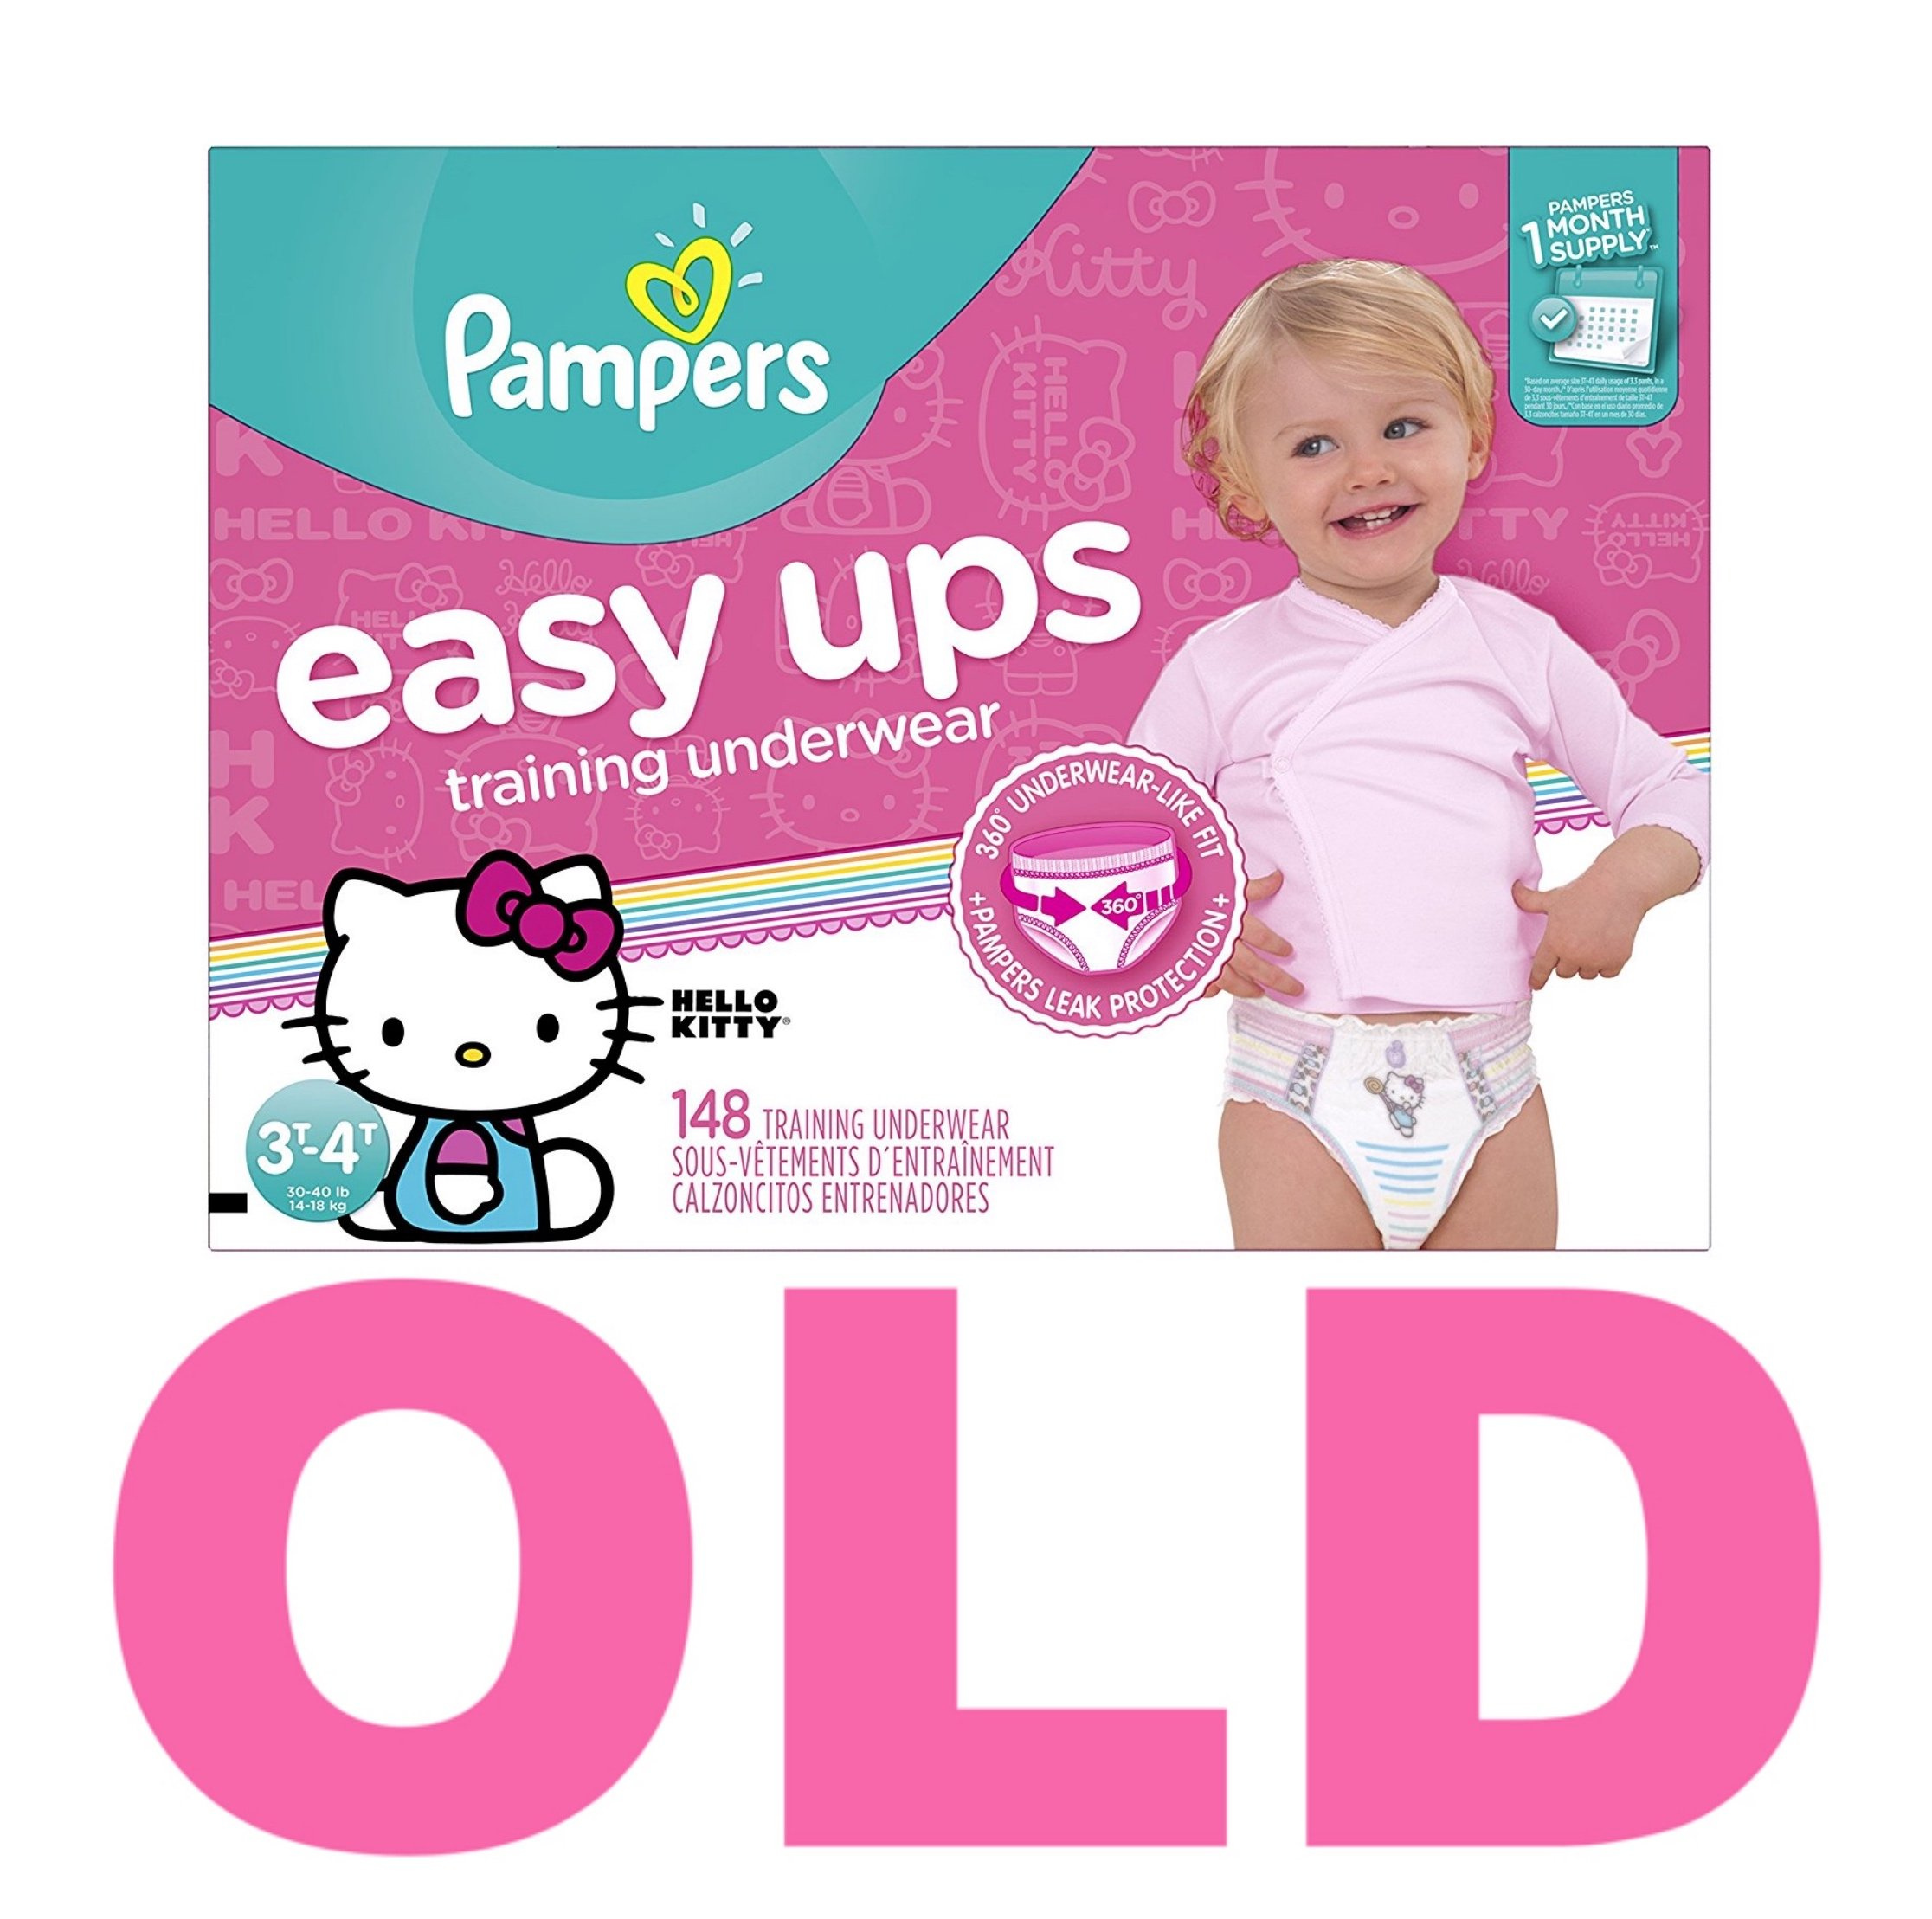 Pampers Easy Ups Training Pants Pull On Disposable Diapers for Girls Size 5 (3T-4T), 148 Count, ONE MONTH SUPPLY by Pampers (Image #2)